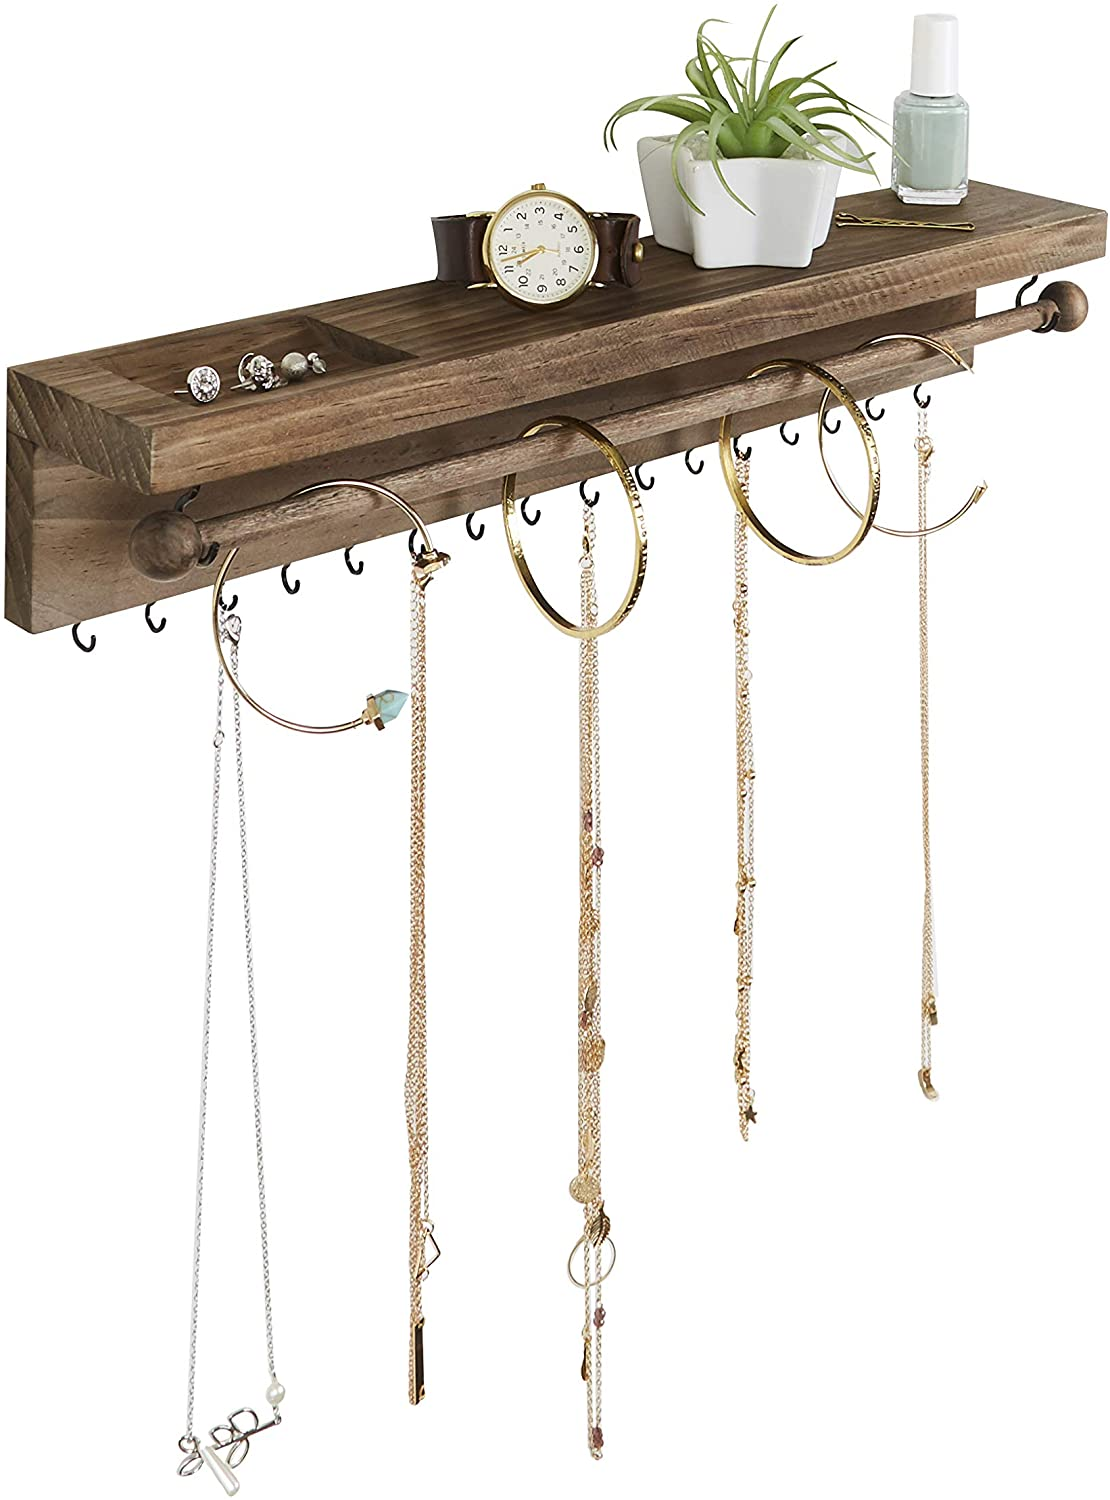 Amazon Com Rustic Jewelry Organizer Wall Mounted Hanging Necklace Holder Wall Mounted Jewelry Hanger Farmhouse Wood Jewelry Display Storage For Necklaces Bracelets And Stud Earrings Home Improvement